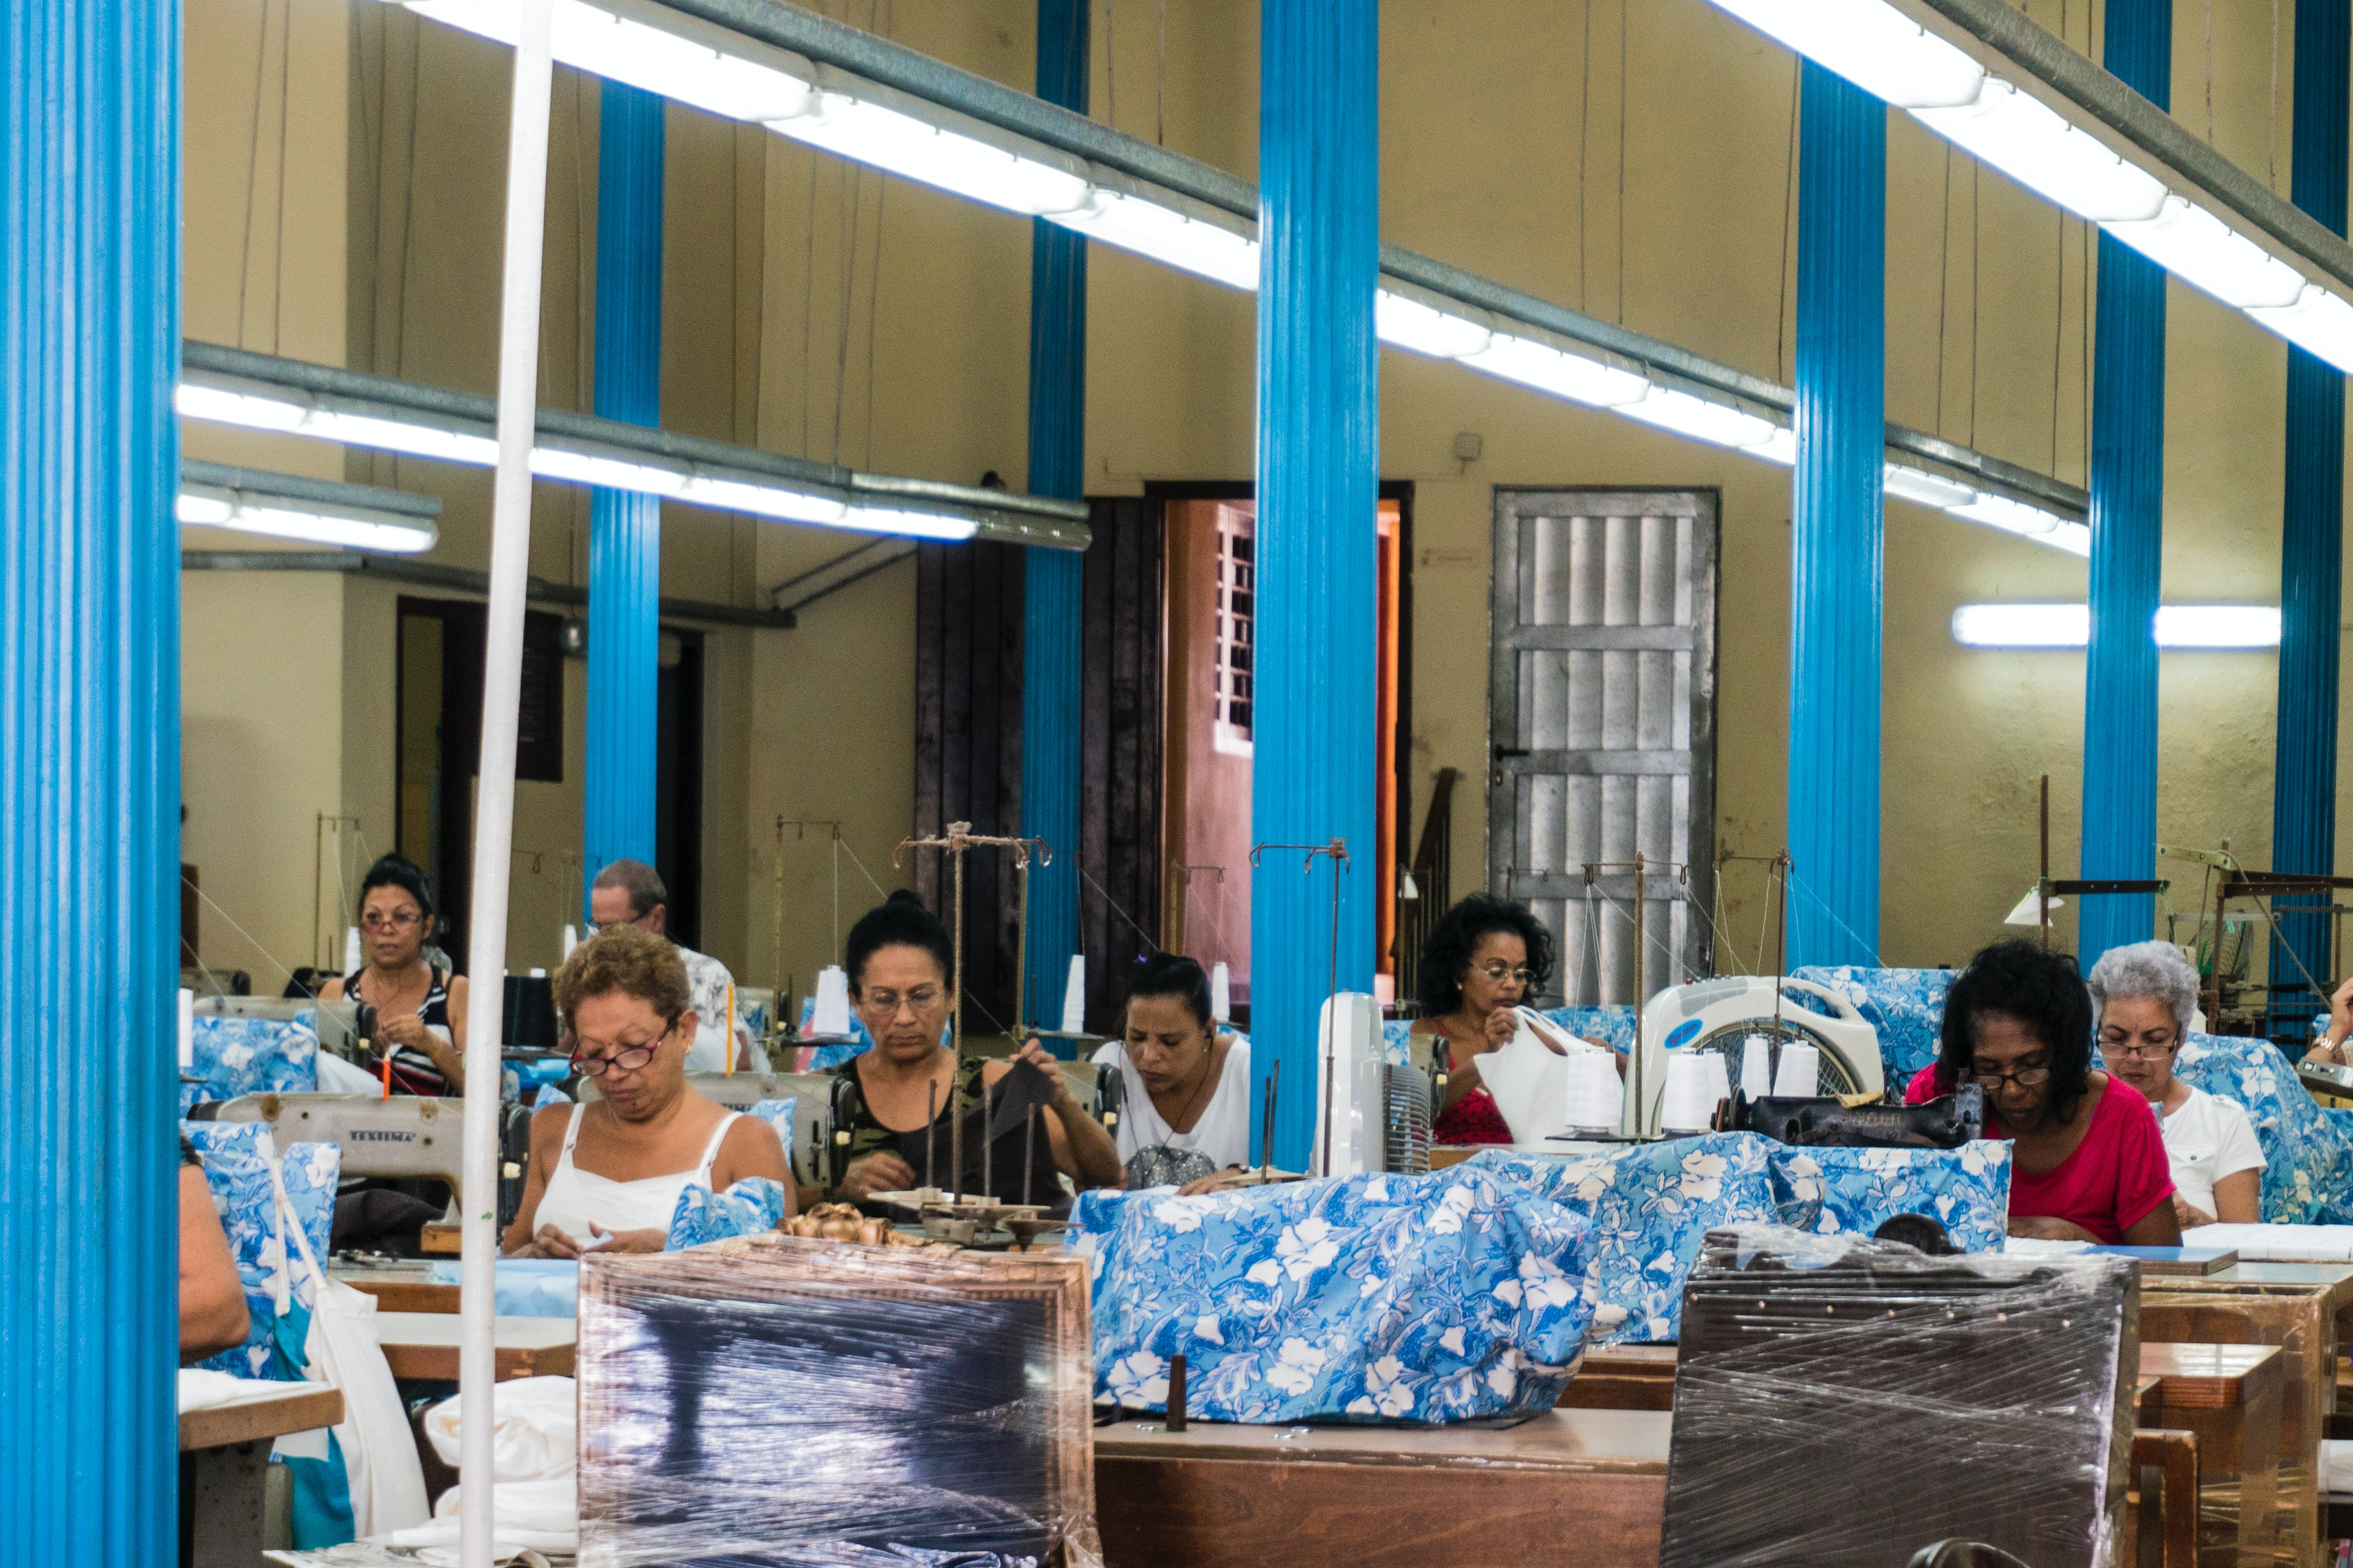 Chair making factory with workers in Havanna